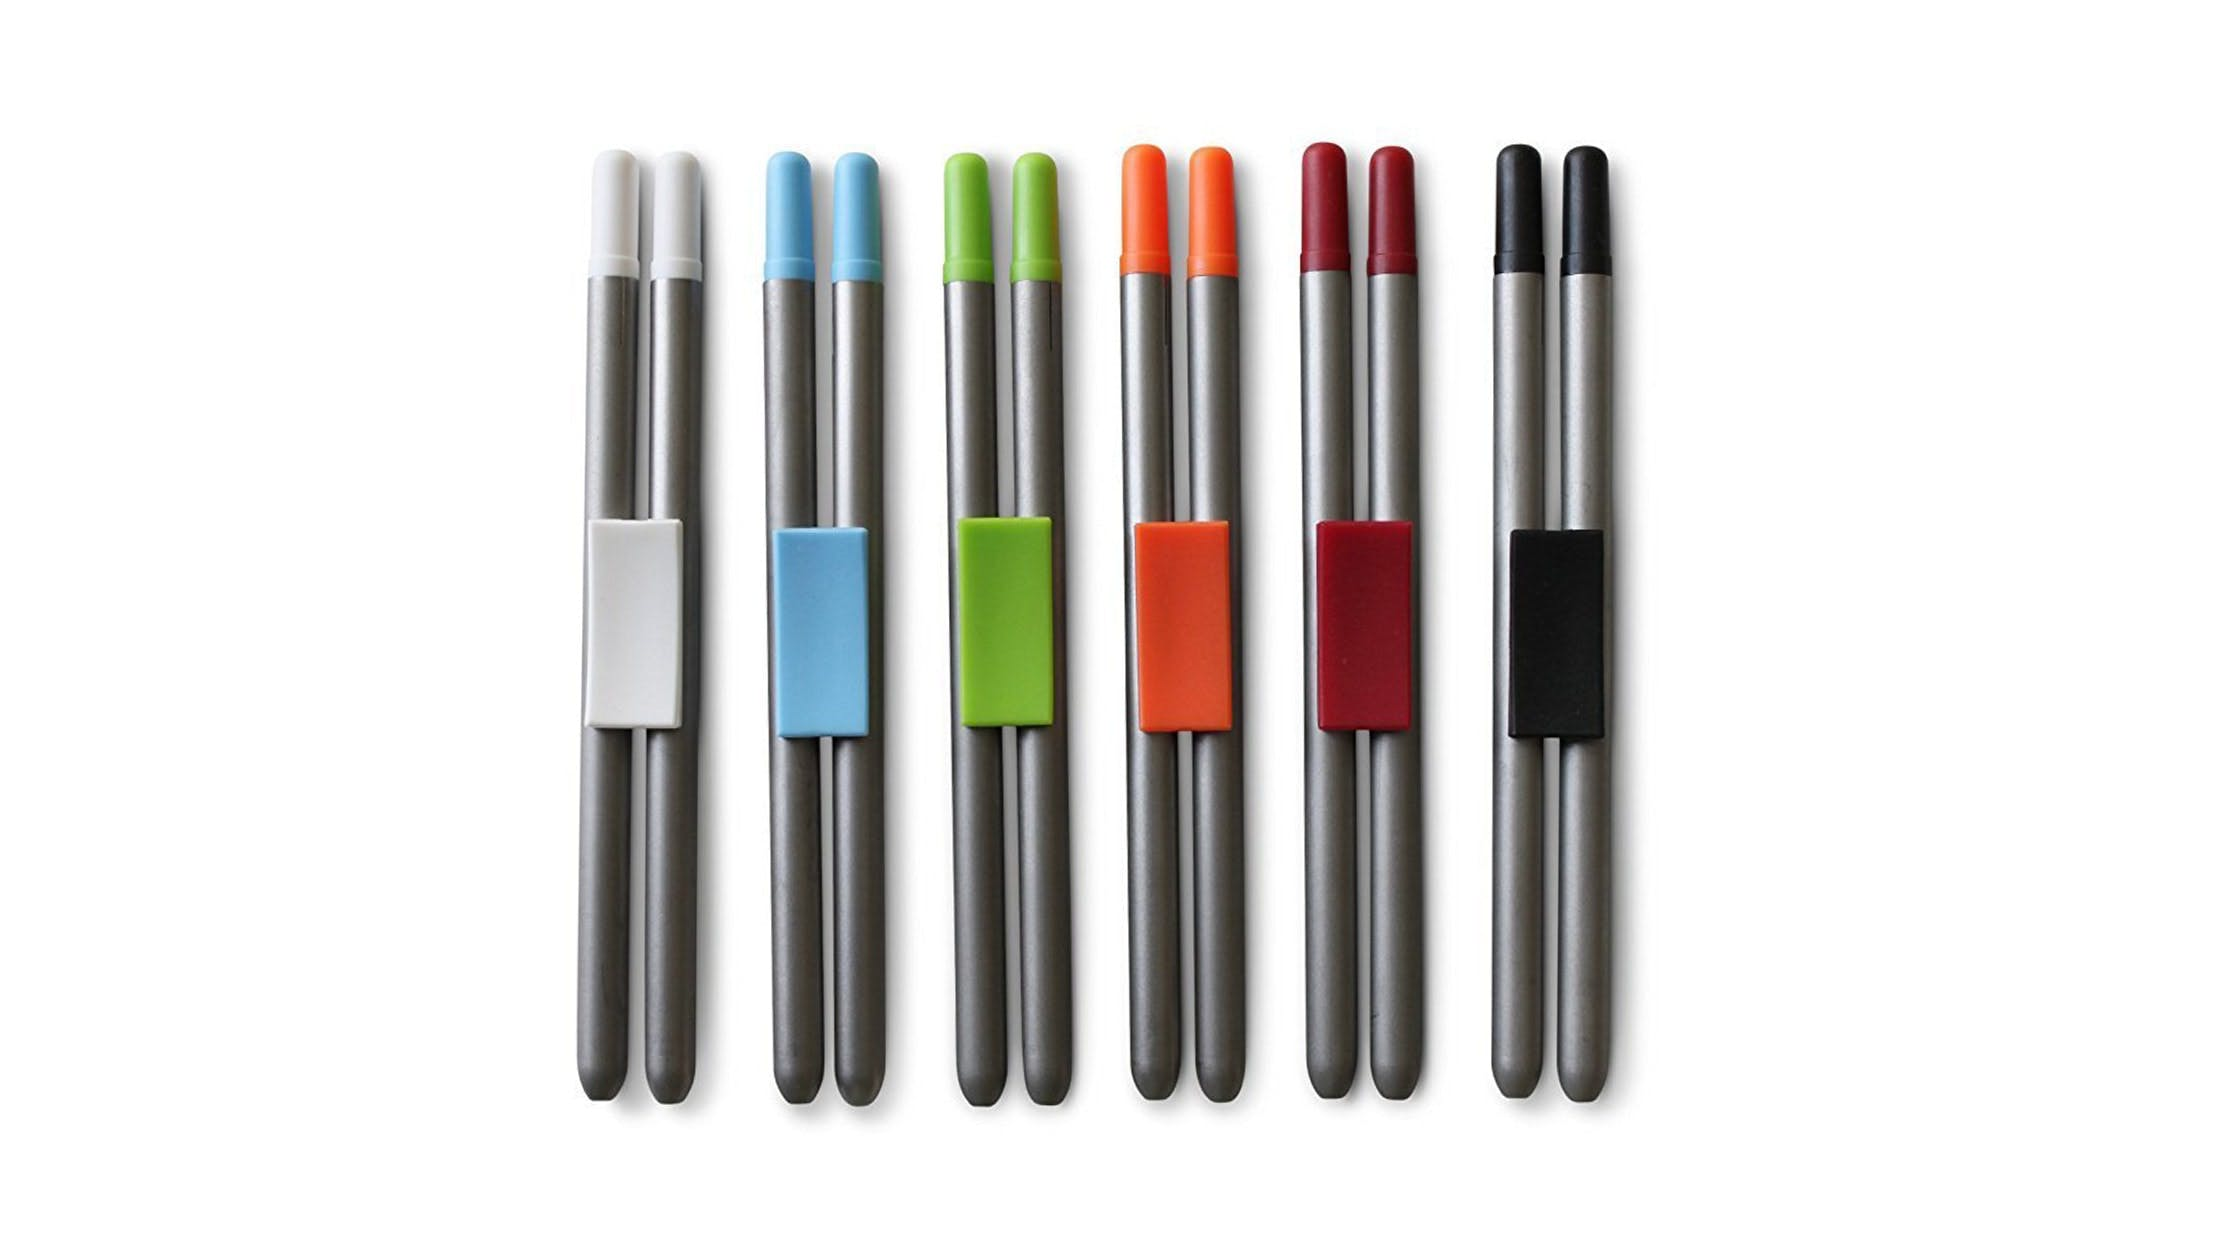 Integral Design Collapsible Chopsticks Colors